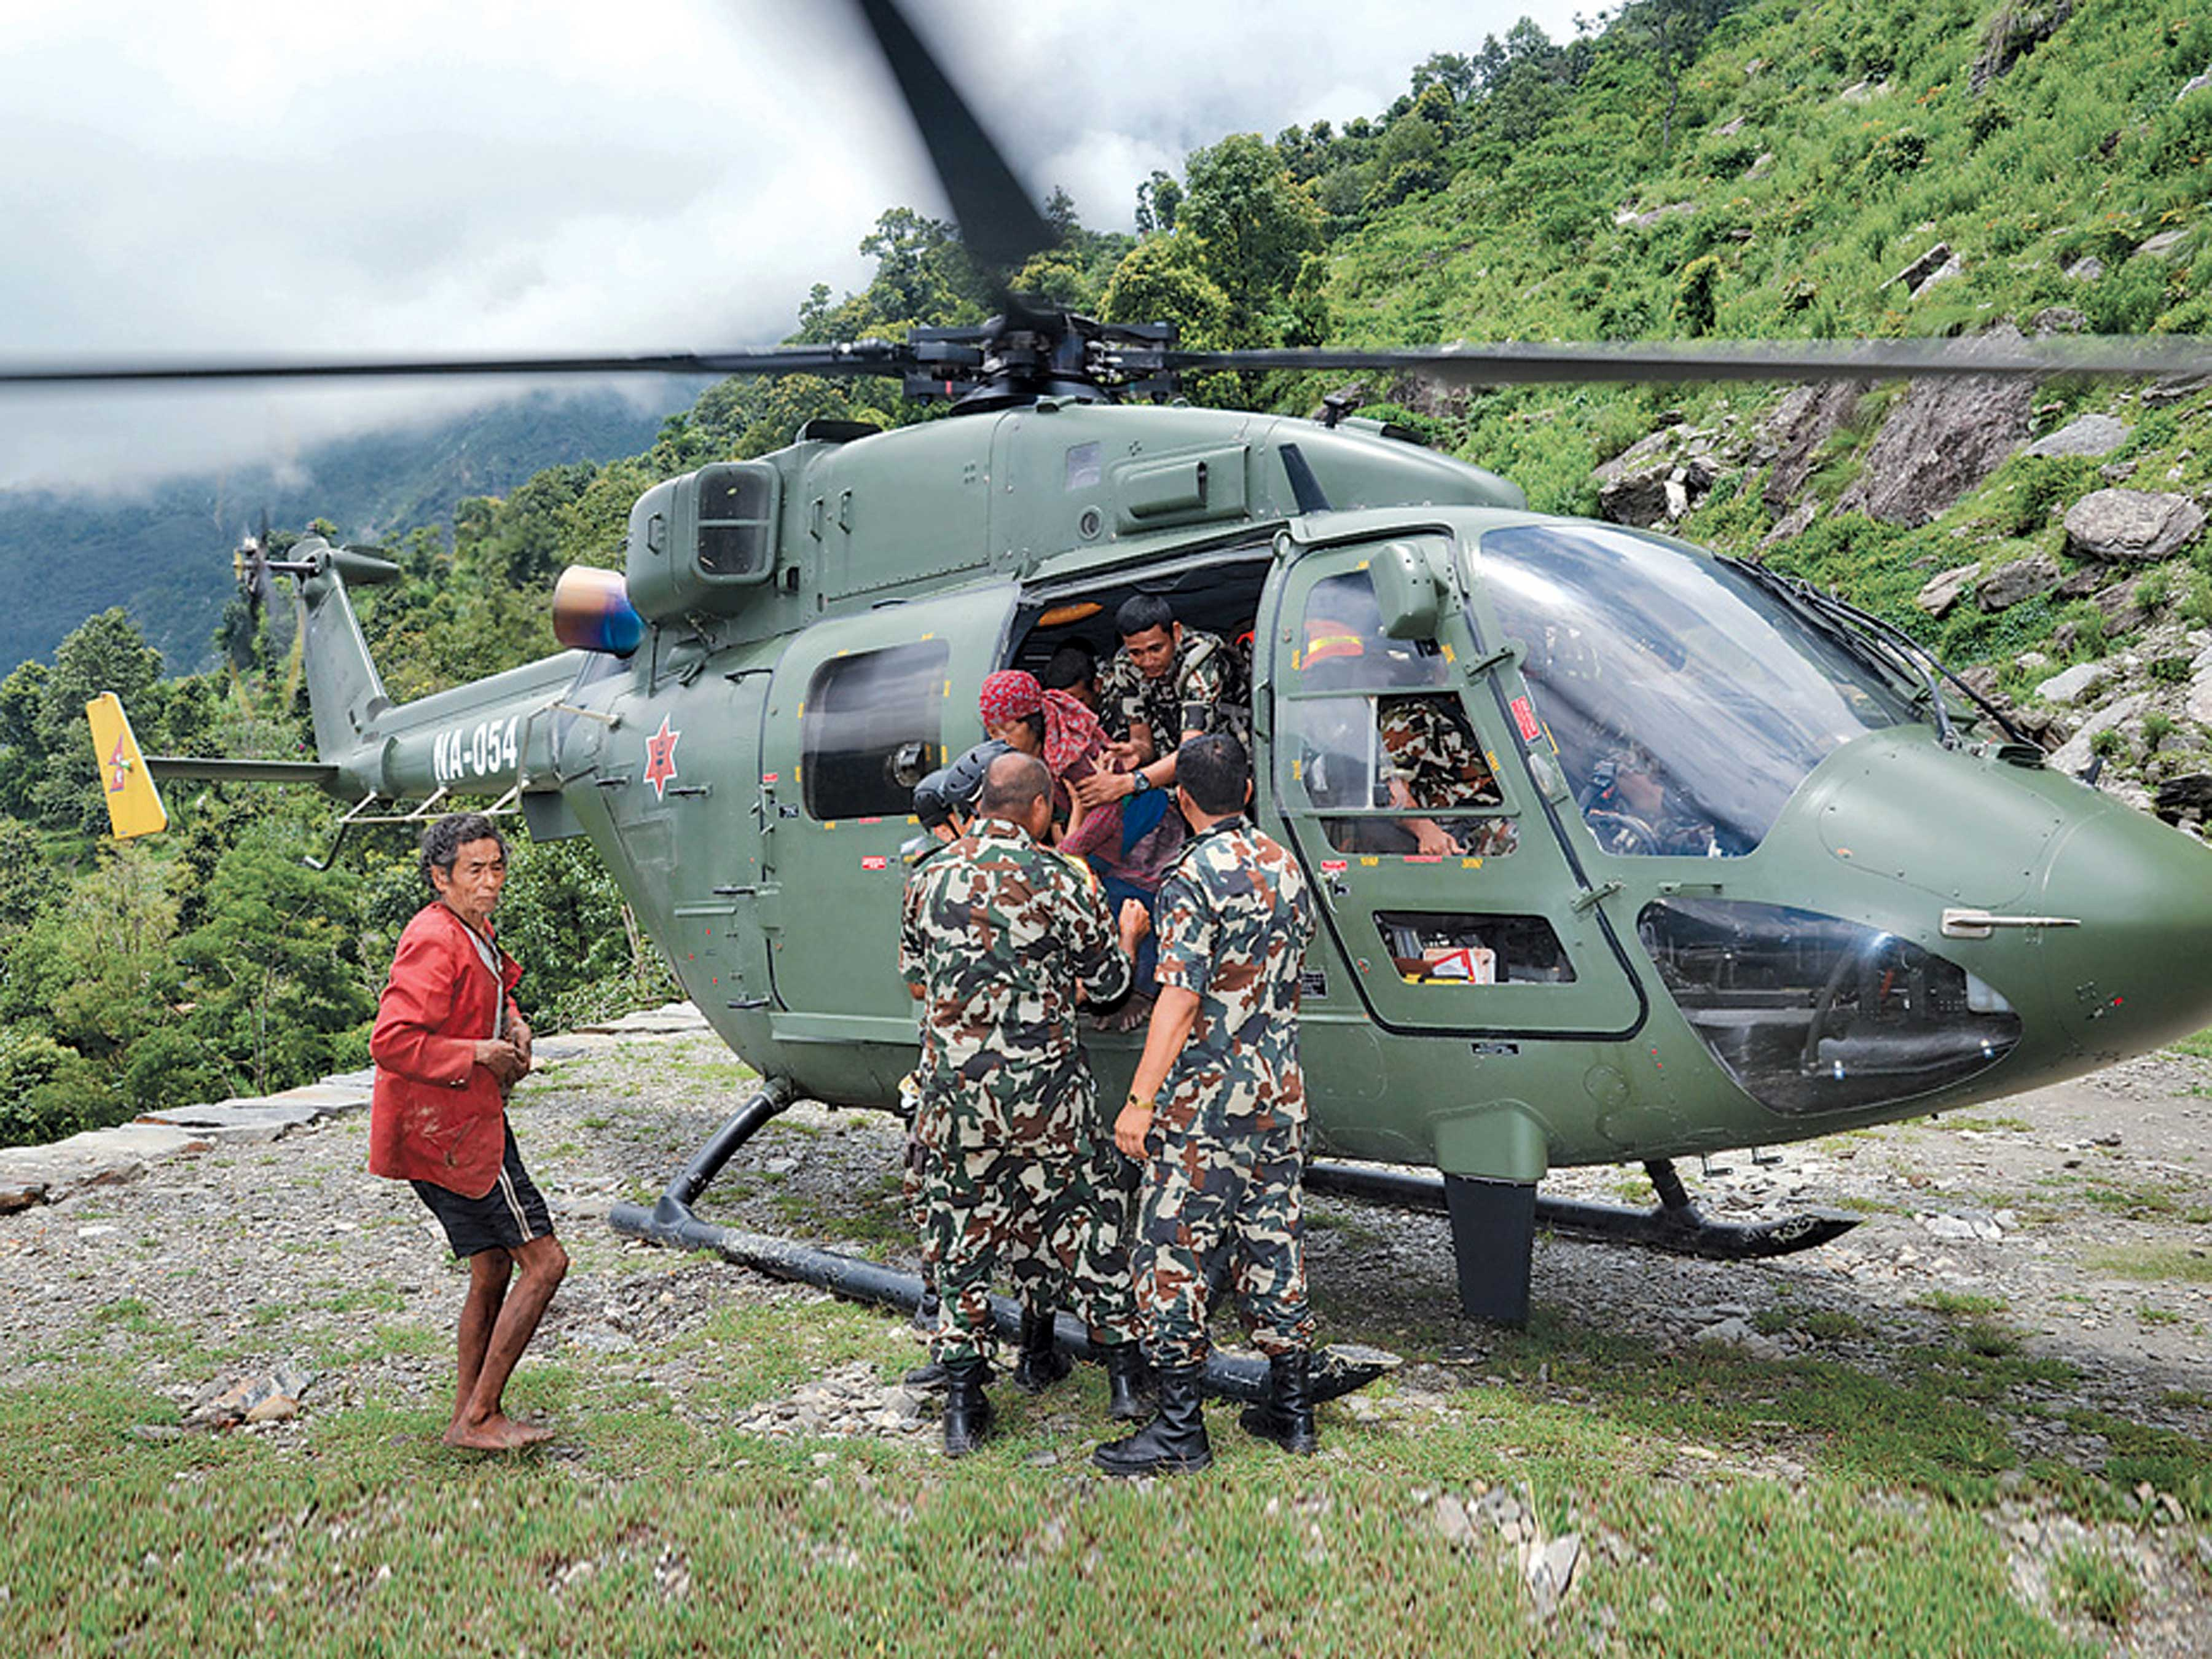 Saving the lives of Nepalese women